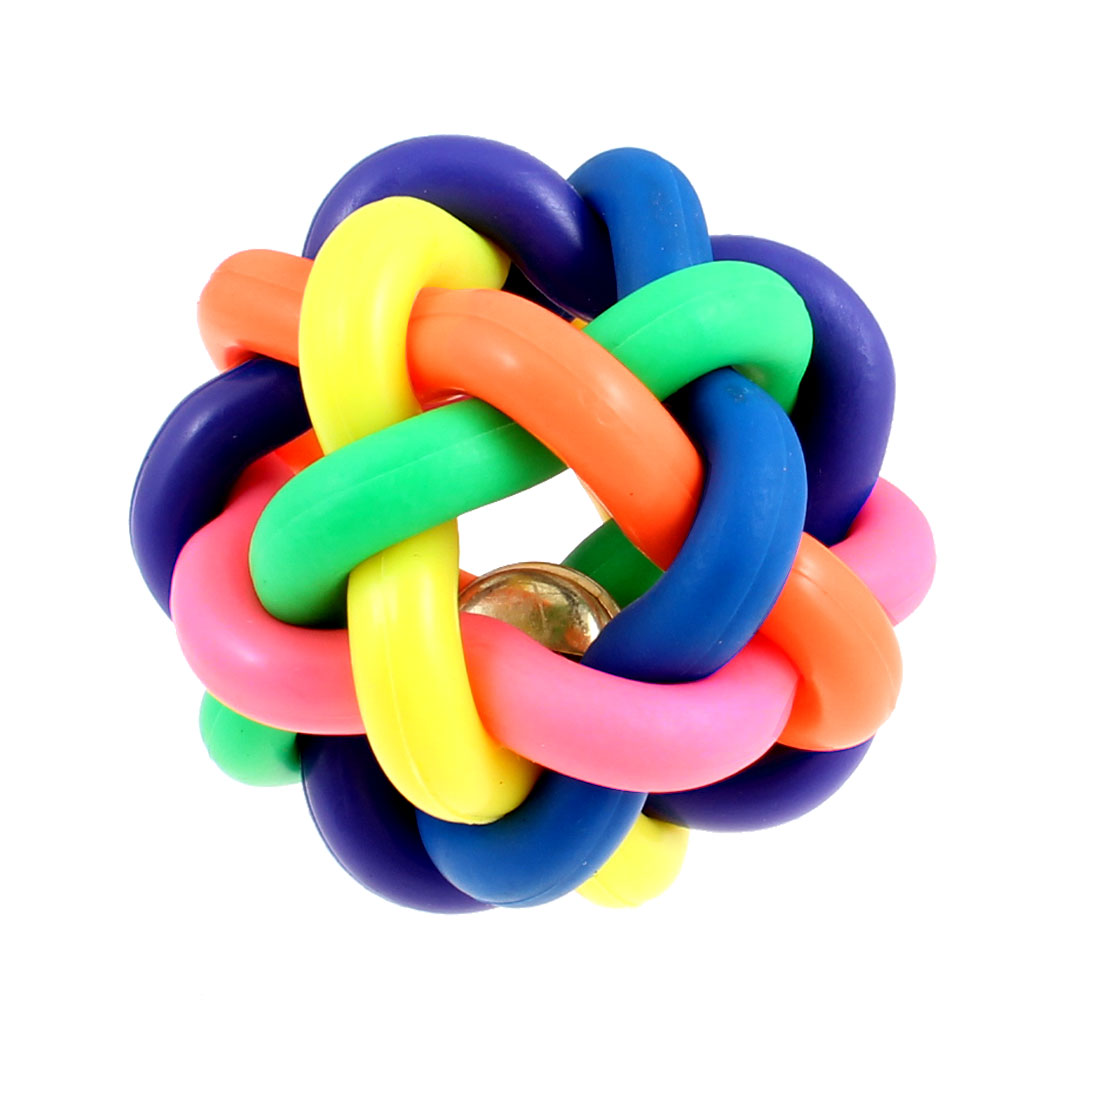 Pet Dog Rubber Cord Woven Jingle Bell Play Ball Toy Colorful 8cm Diameter